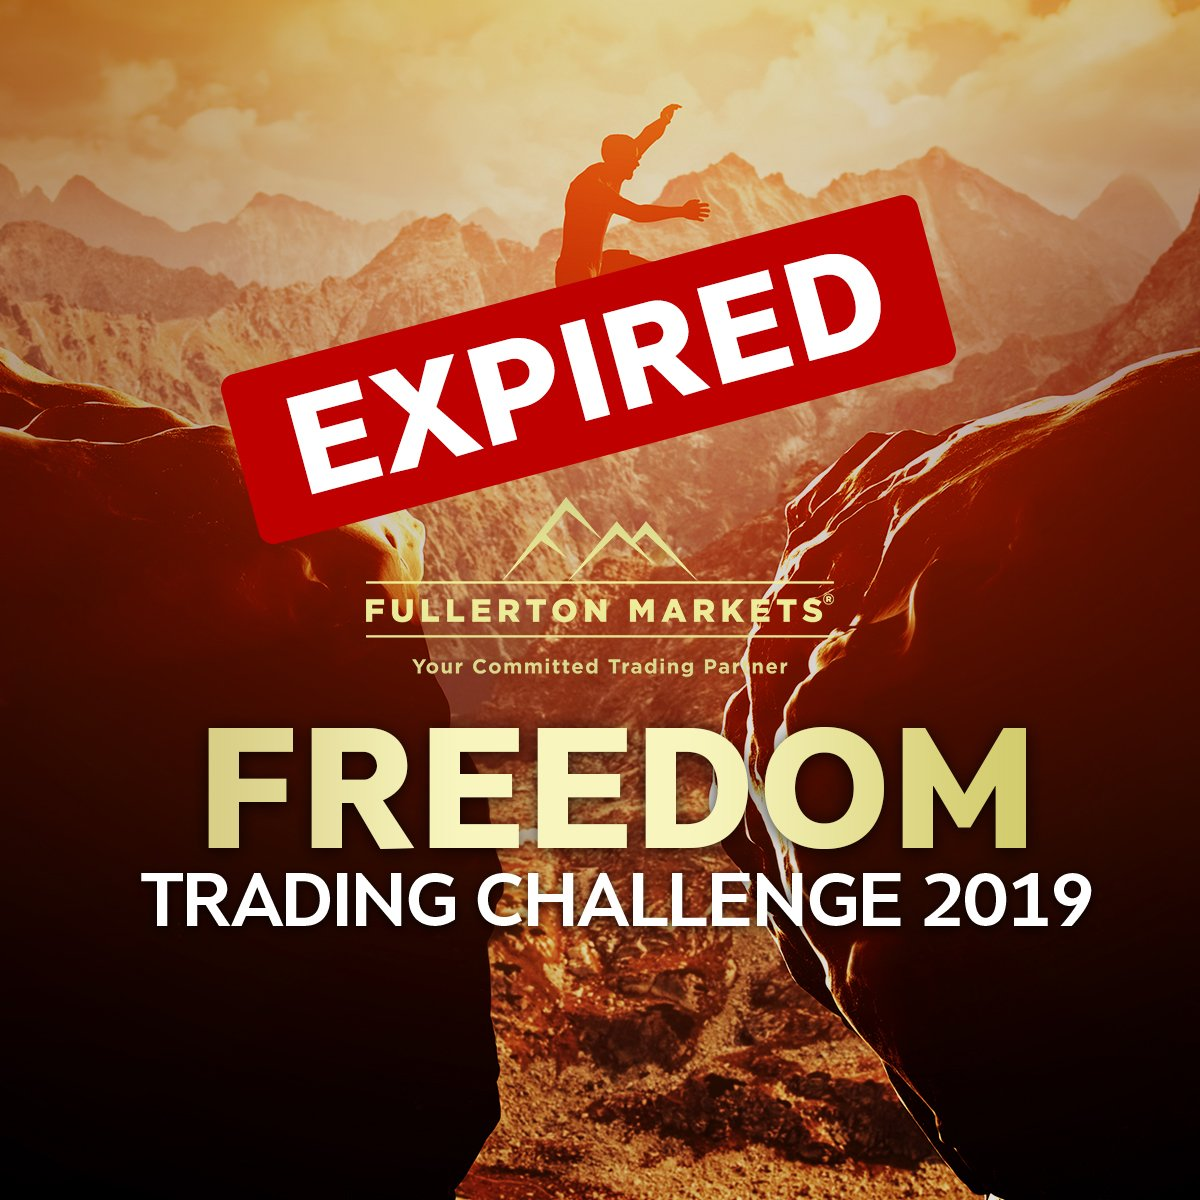 1200x1200_freedom-trading-challenge-EXPIRED